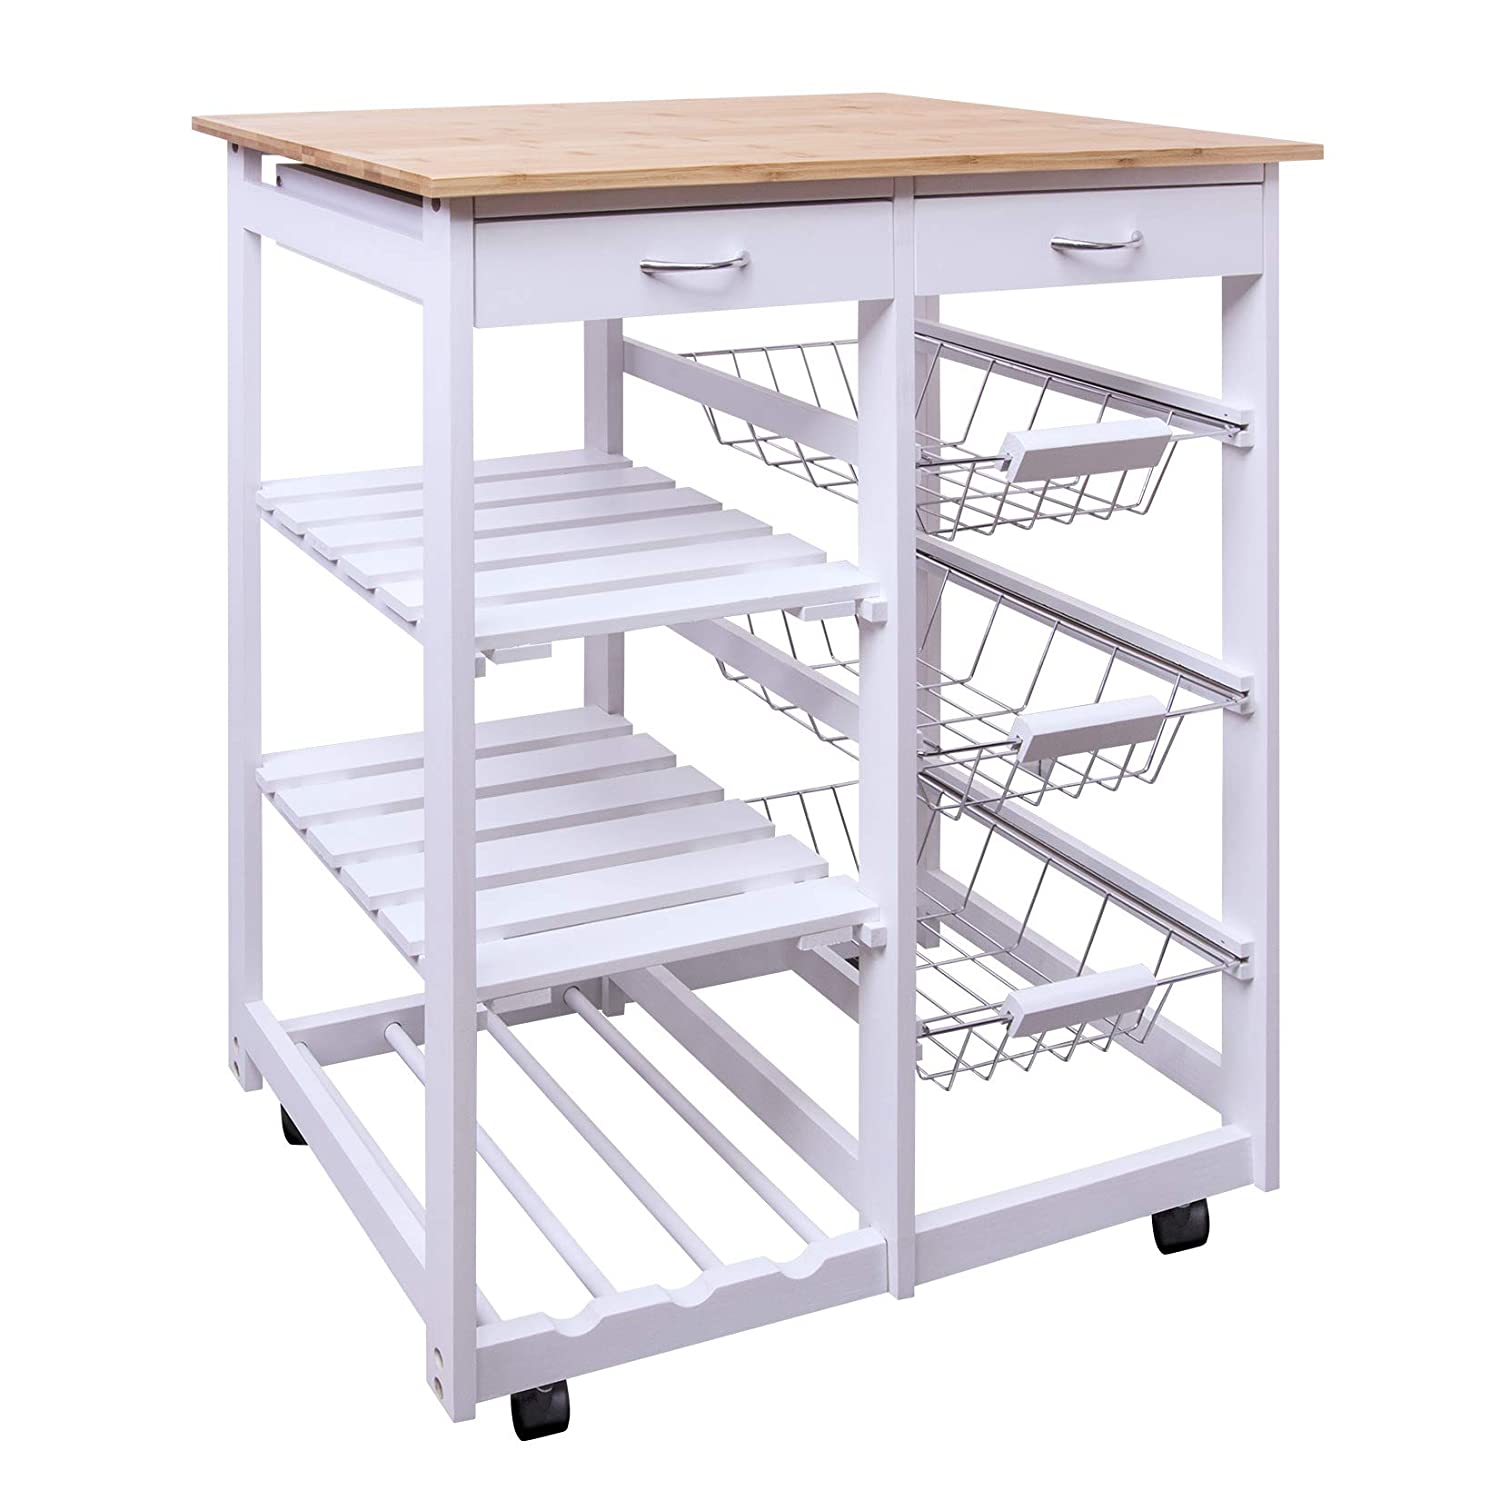 Woodluv Kitchen Trolley Cart Islands Storage Rack With Wine Rack, Shelves,  Wire Baskets And Dual Drawers